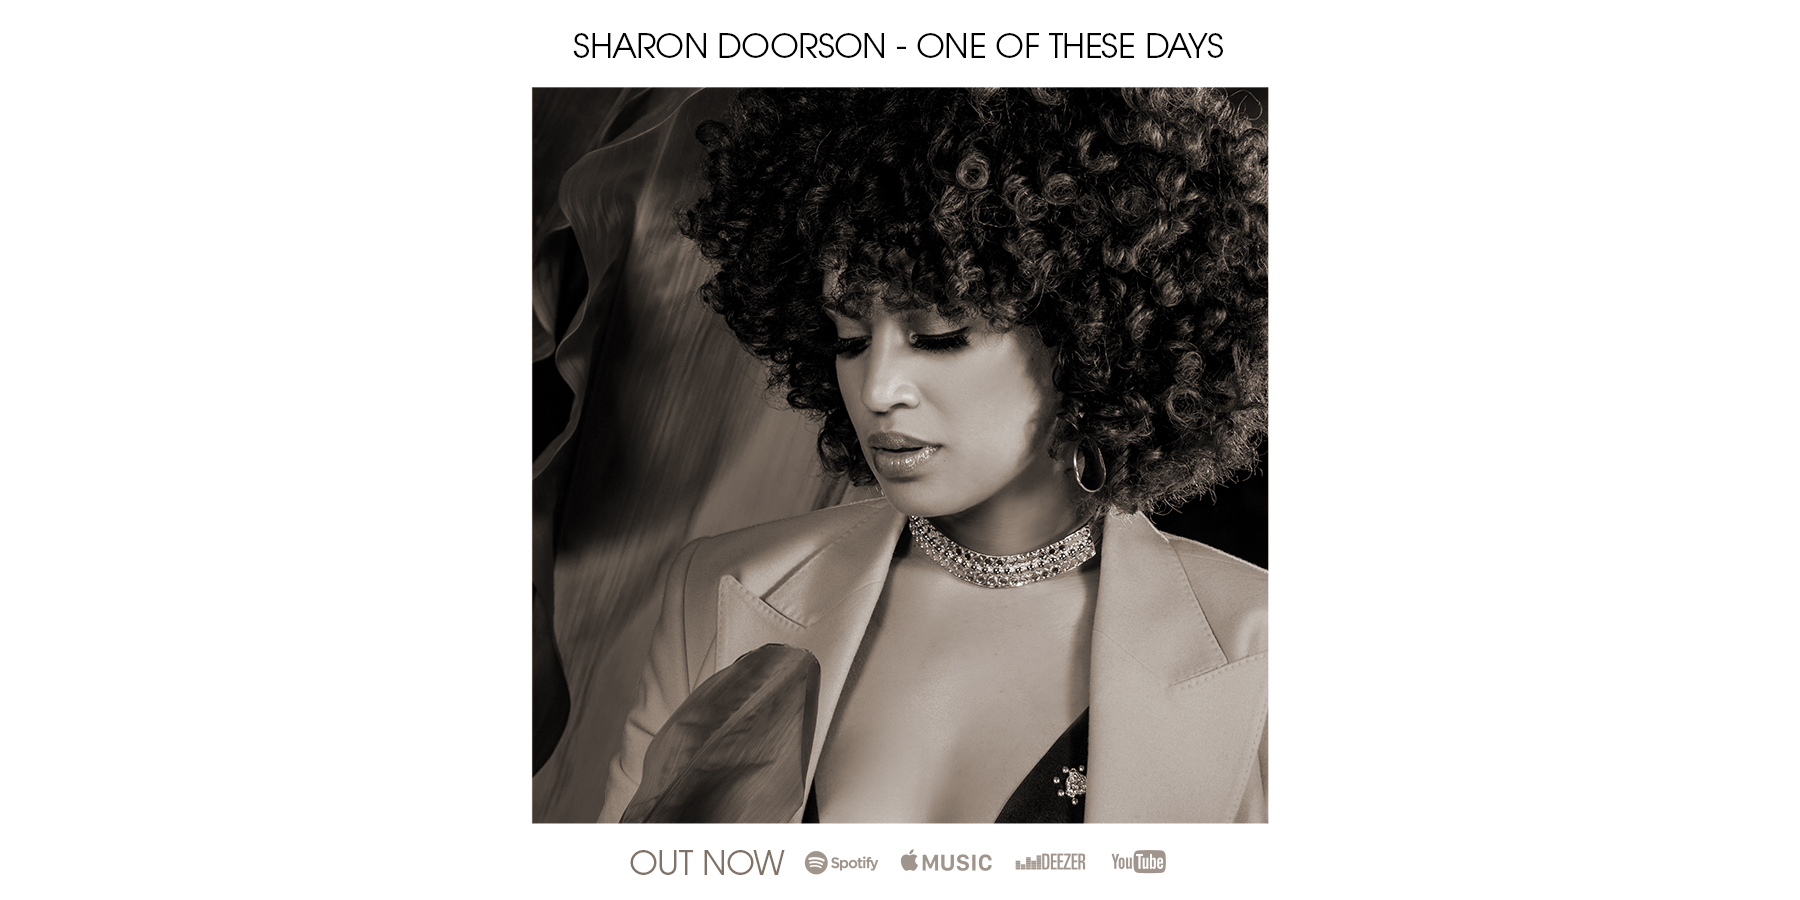 SharonDoorson_OneOfTheseDays_TWP_ON.jpg